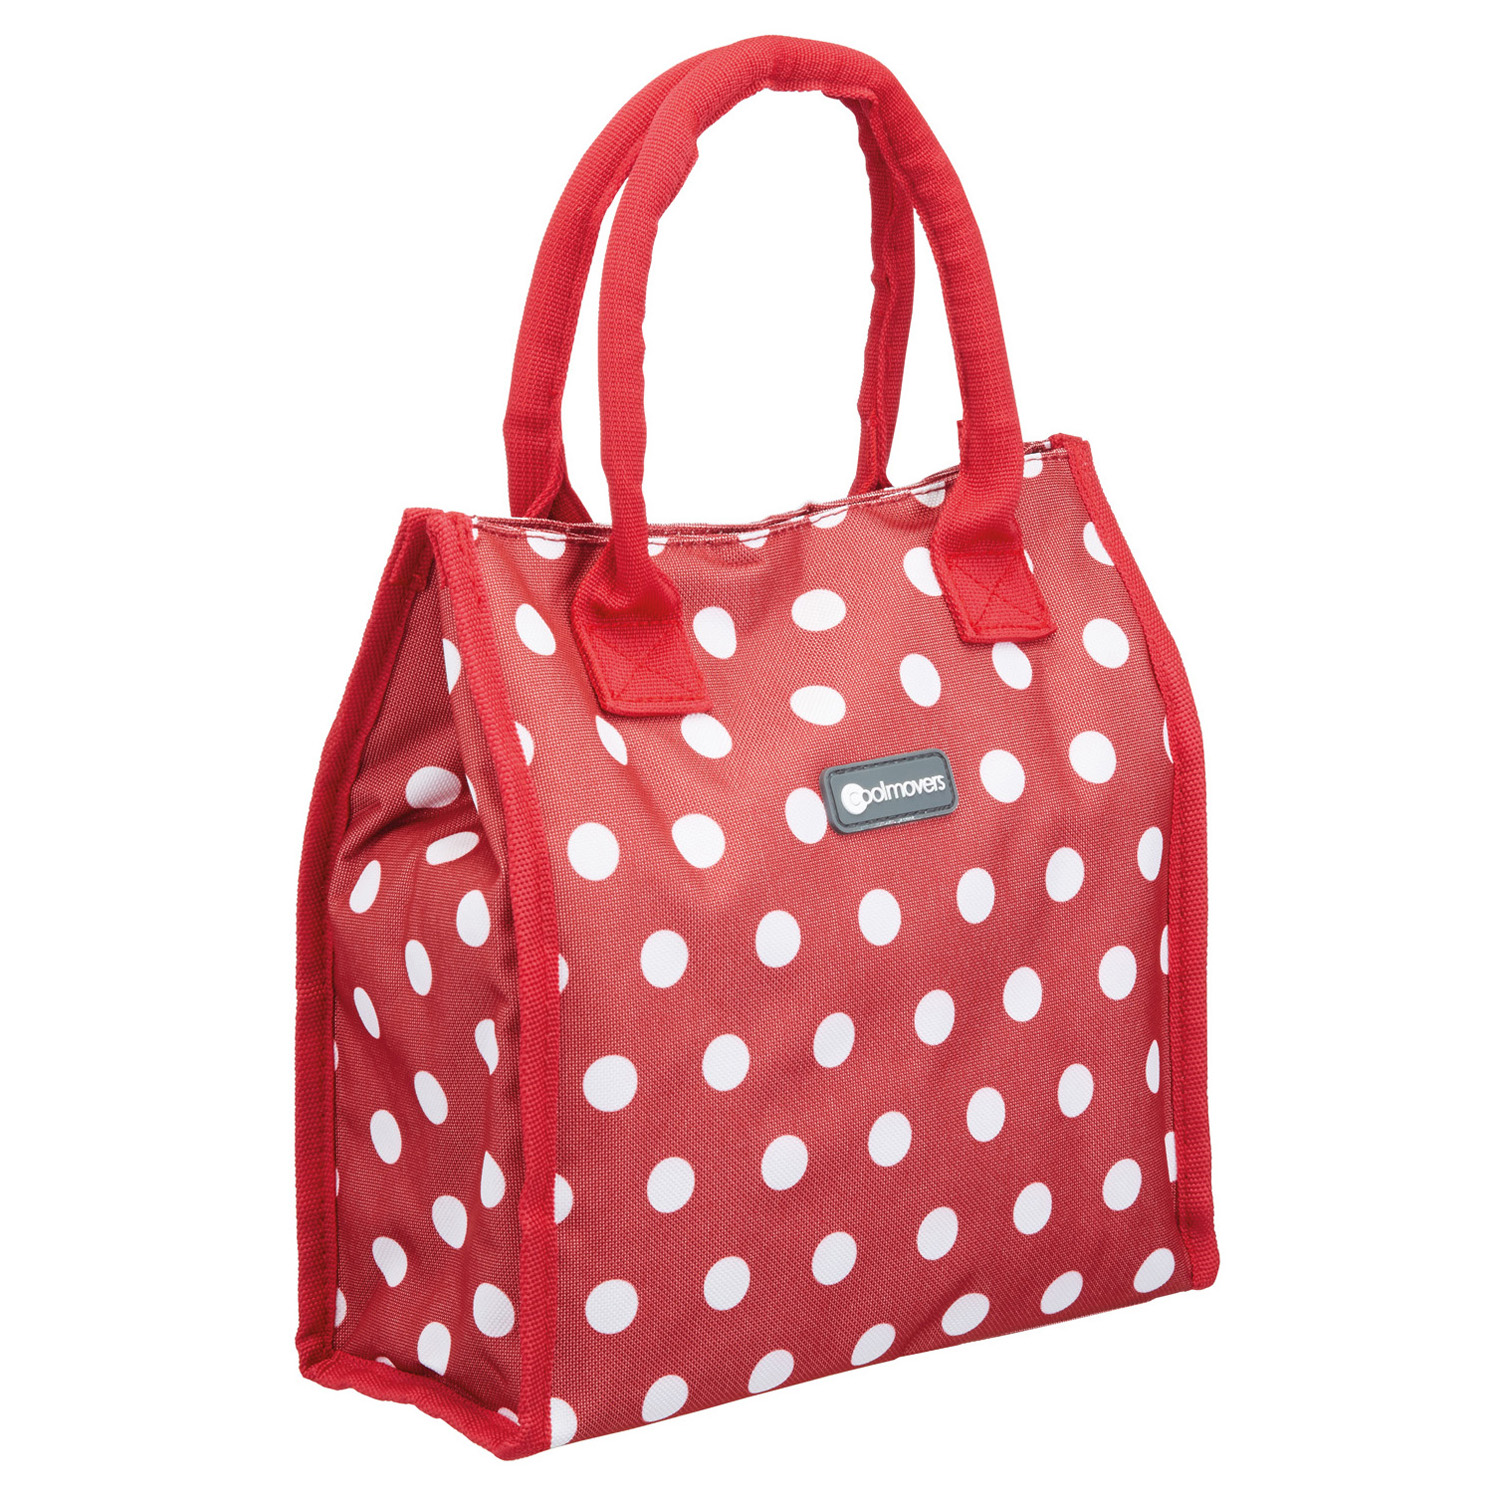 Image of Kitchencraft 4l Tote Cool Bags, Red